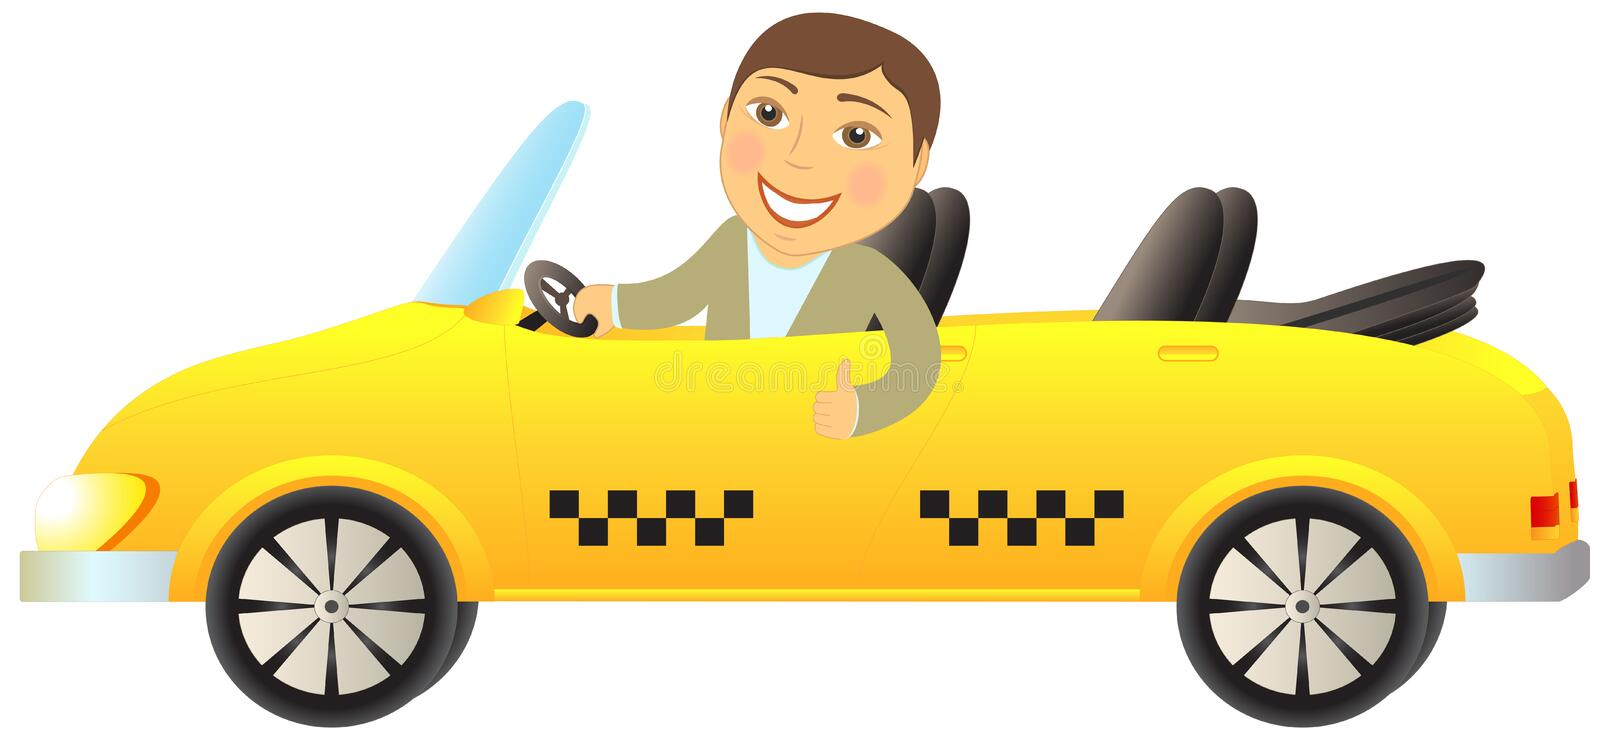 Download Taxi Cabriolet With Man Showing Thumb Up Stock Vector - Image: 25077050